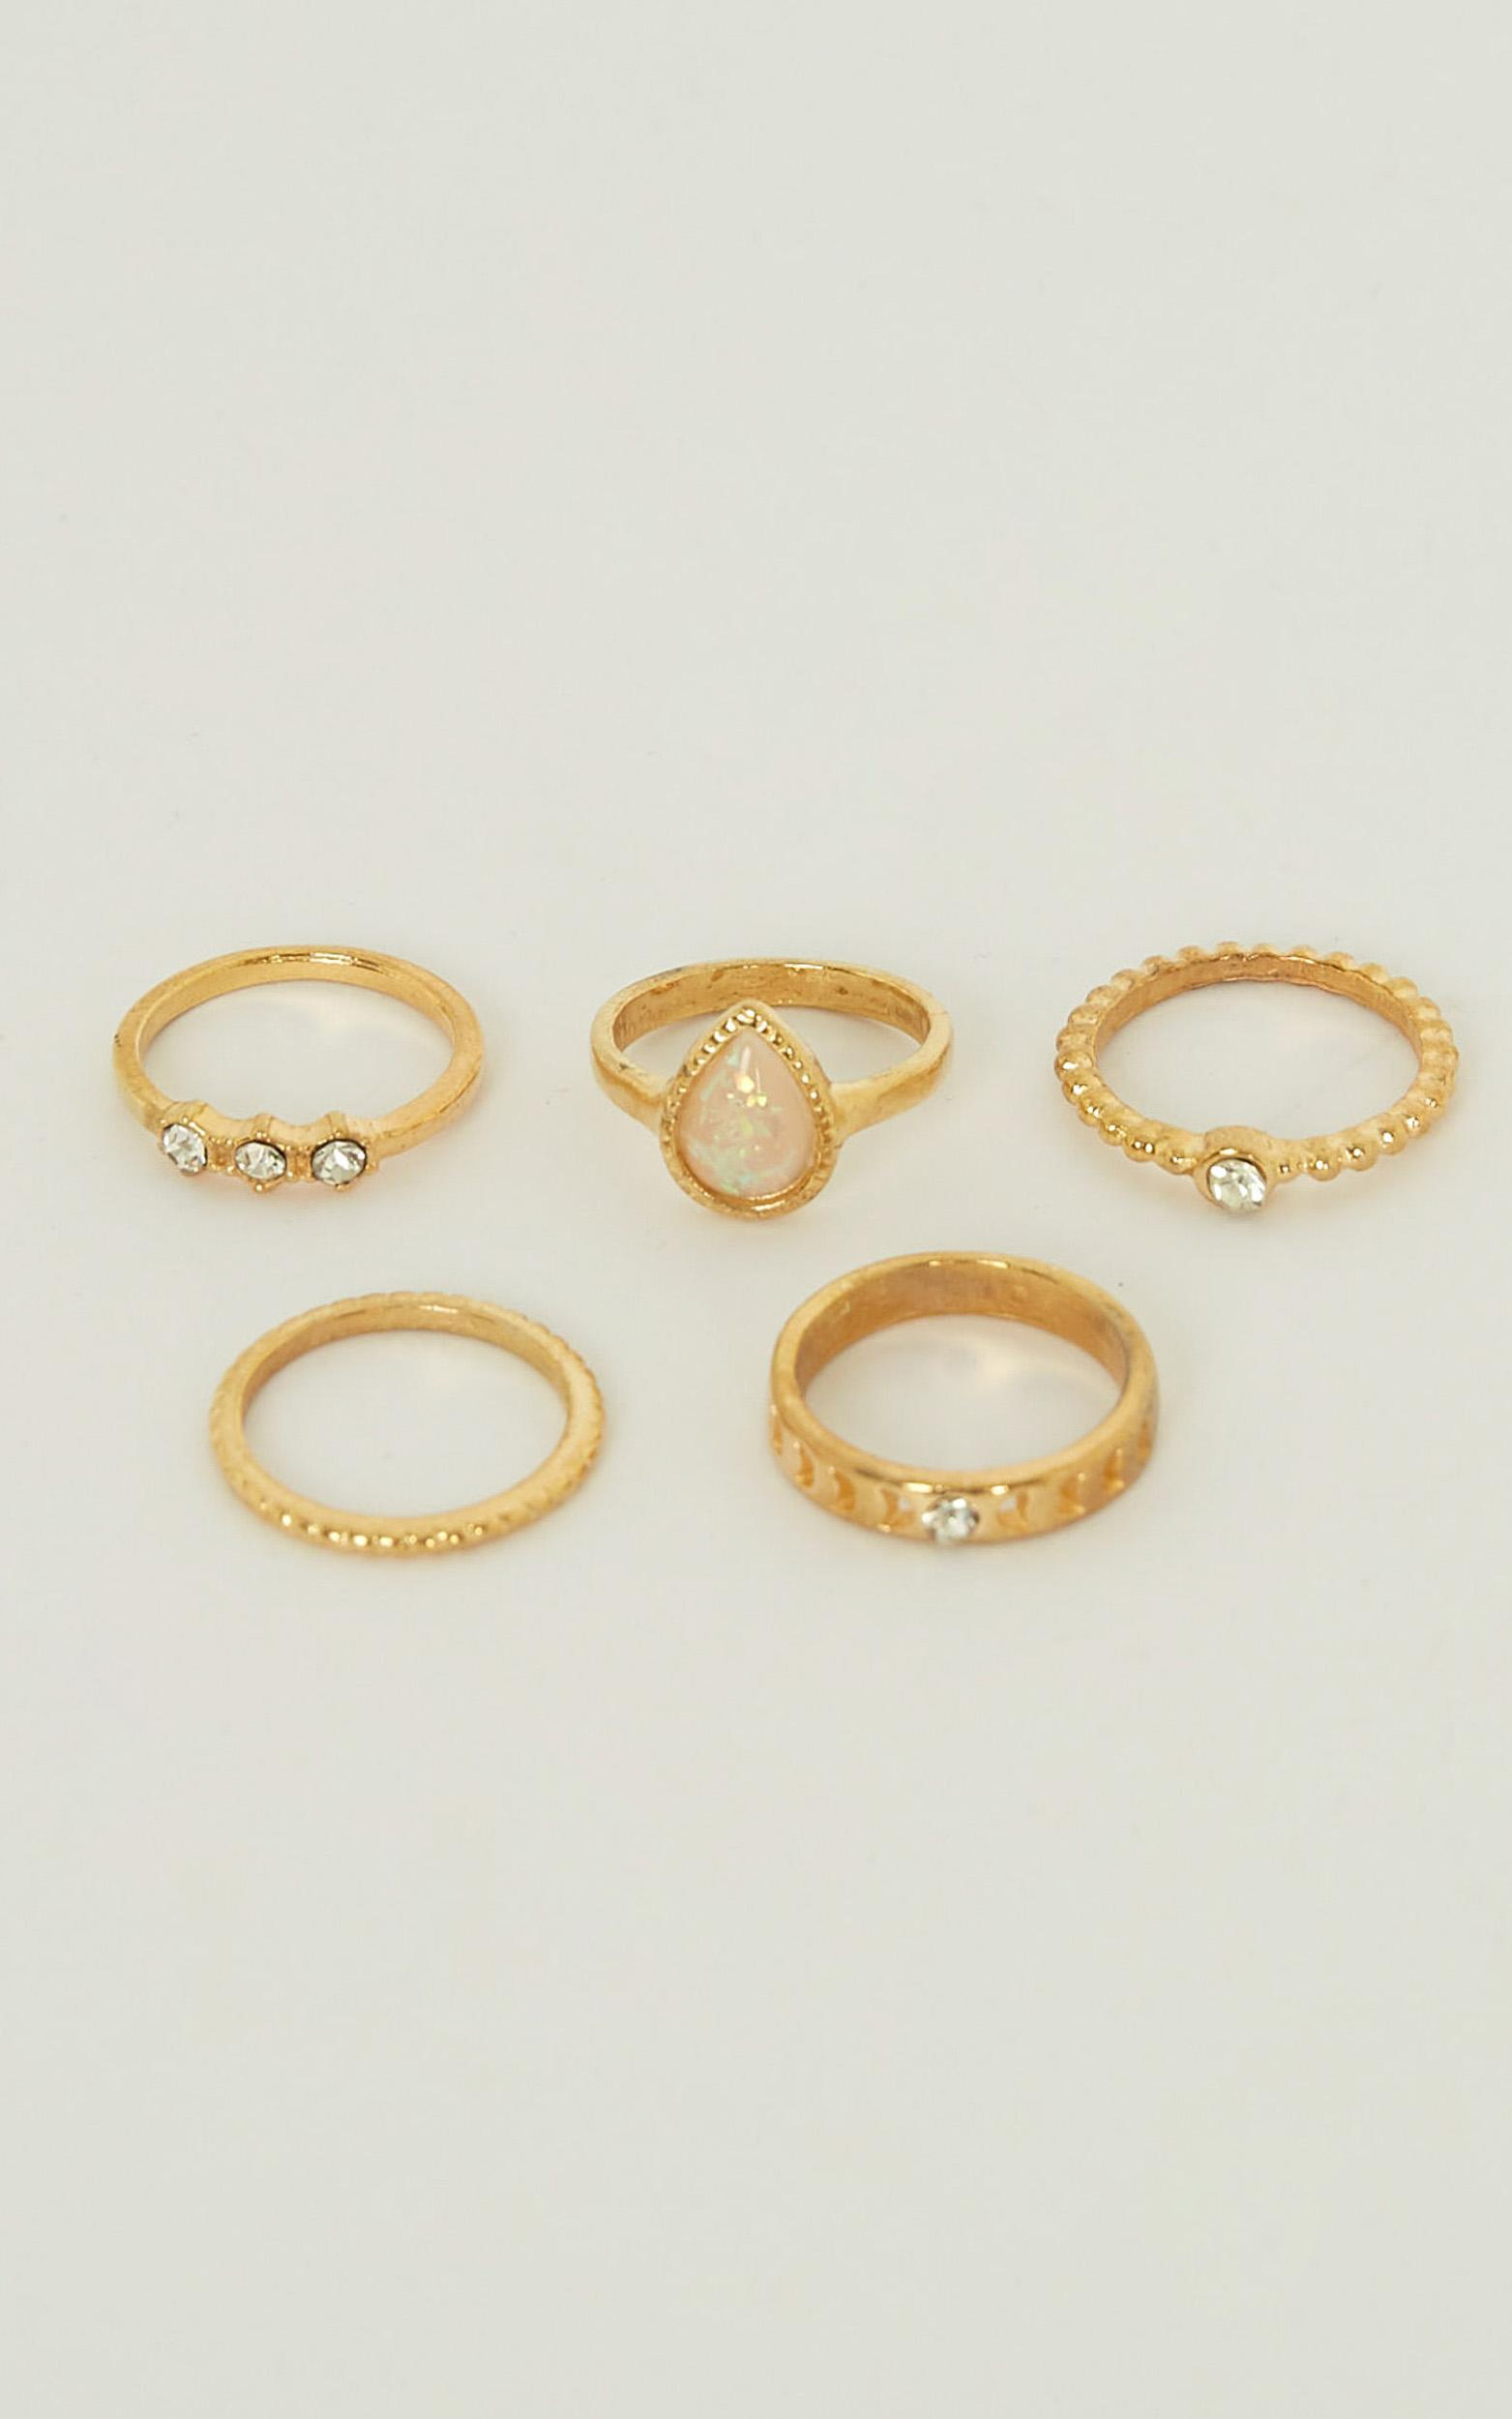 On Your Mind Ring Set In Gold, , hi-res image number null